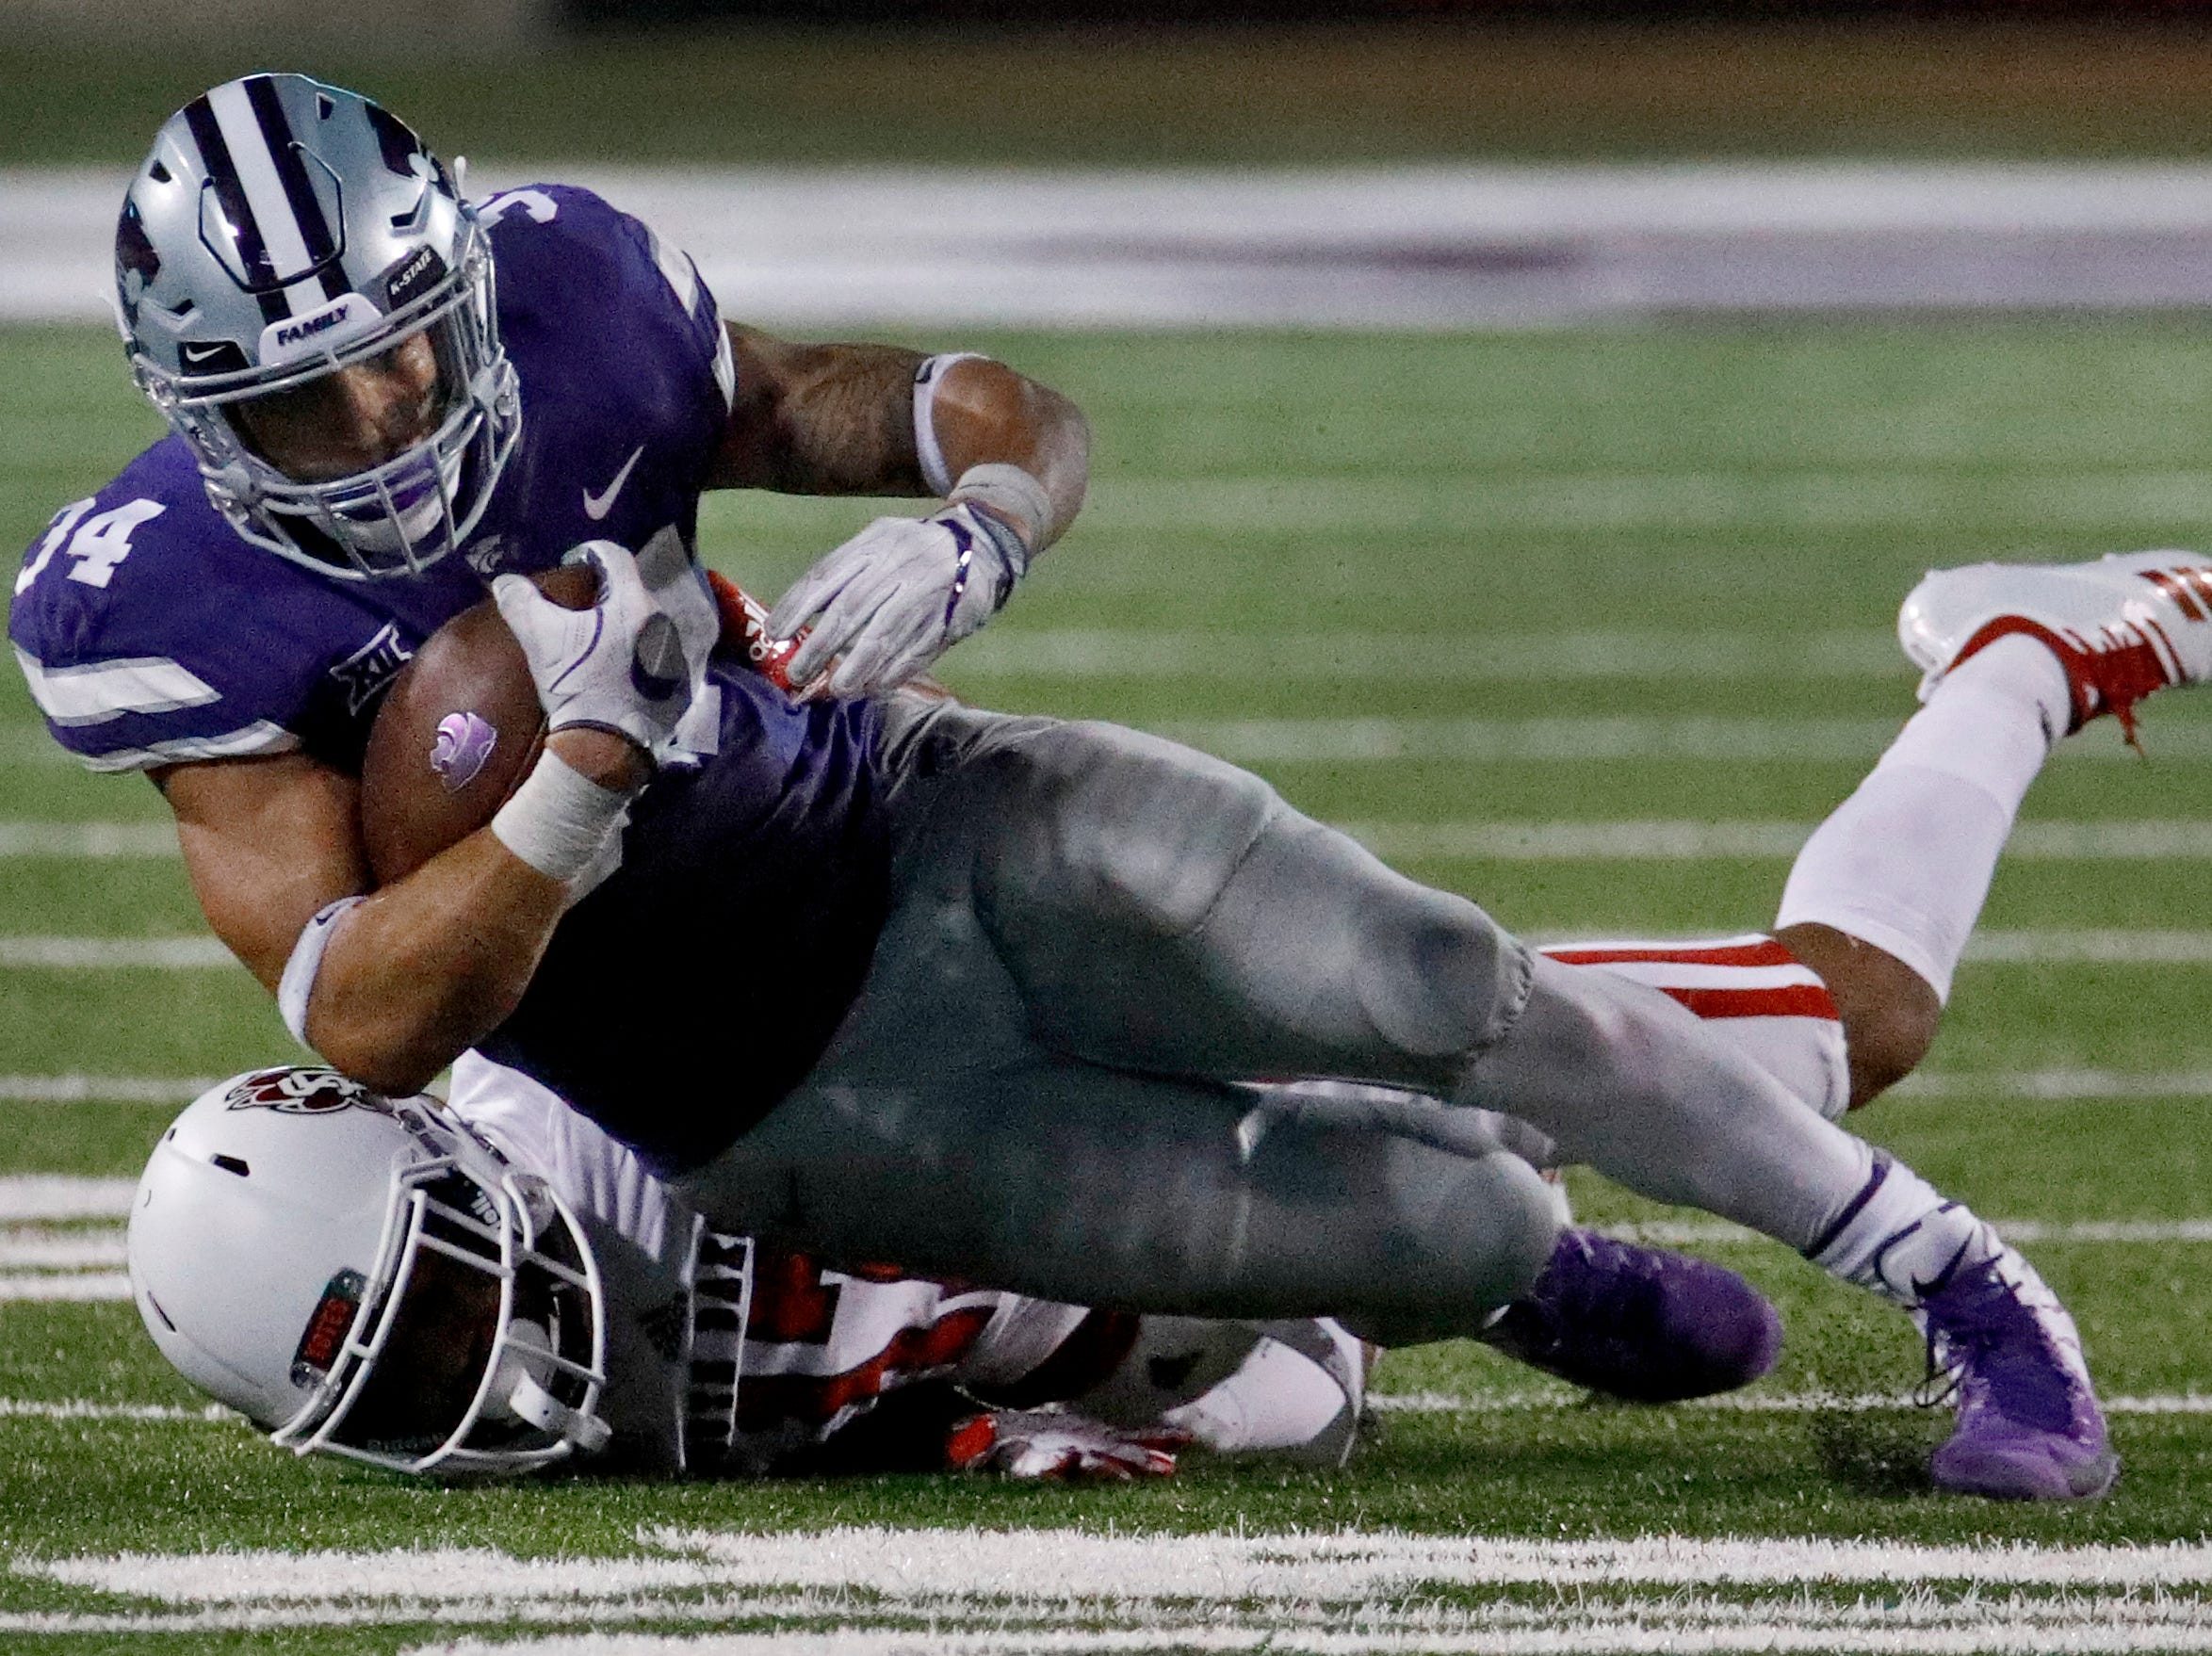 Kansas State running back Alex Barnes (34) is brought down by South Dakota defensive back Cameron Tisdale during the second half of an NCAA college football game Saturday, Sept. 1, 2018, in Manhattan, Kan. Kansas State won 27-24. (AP Photo/Charlie Riedel)